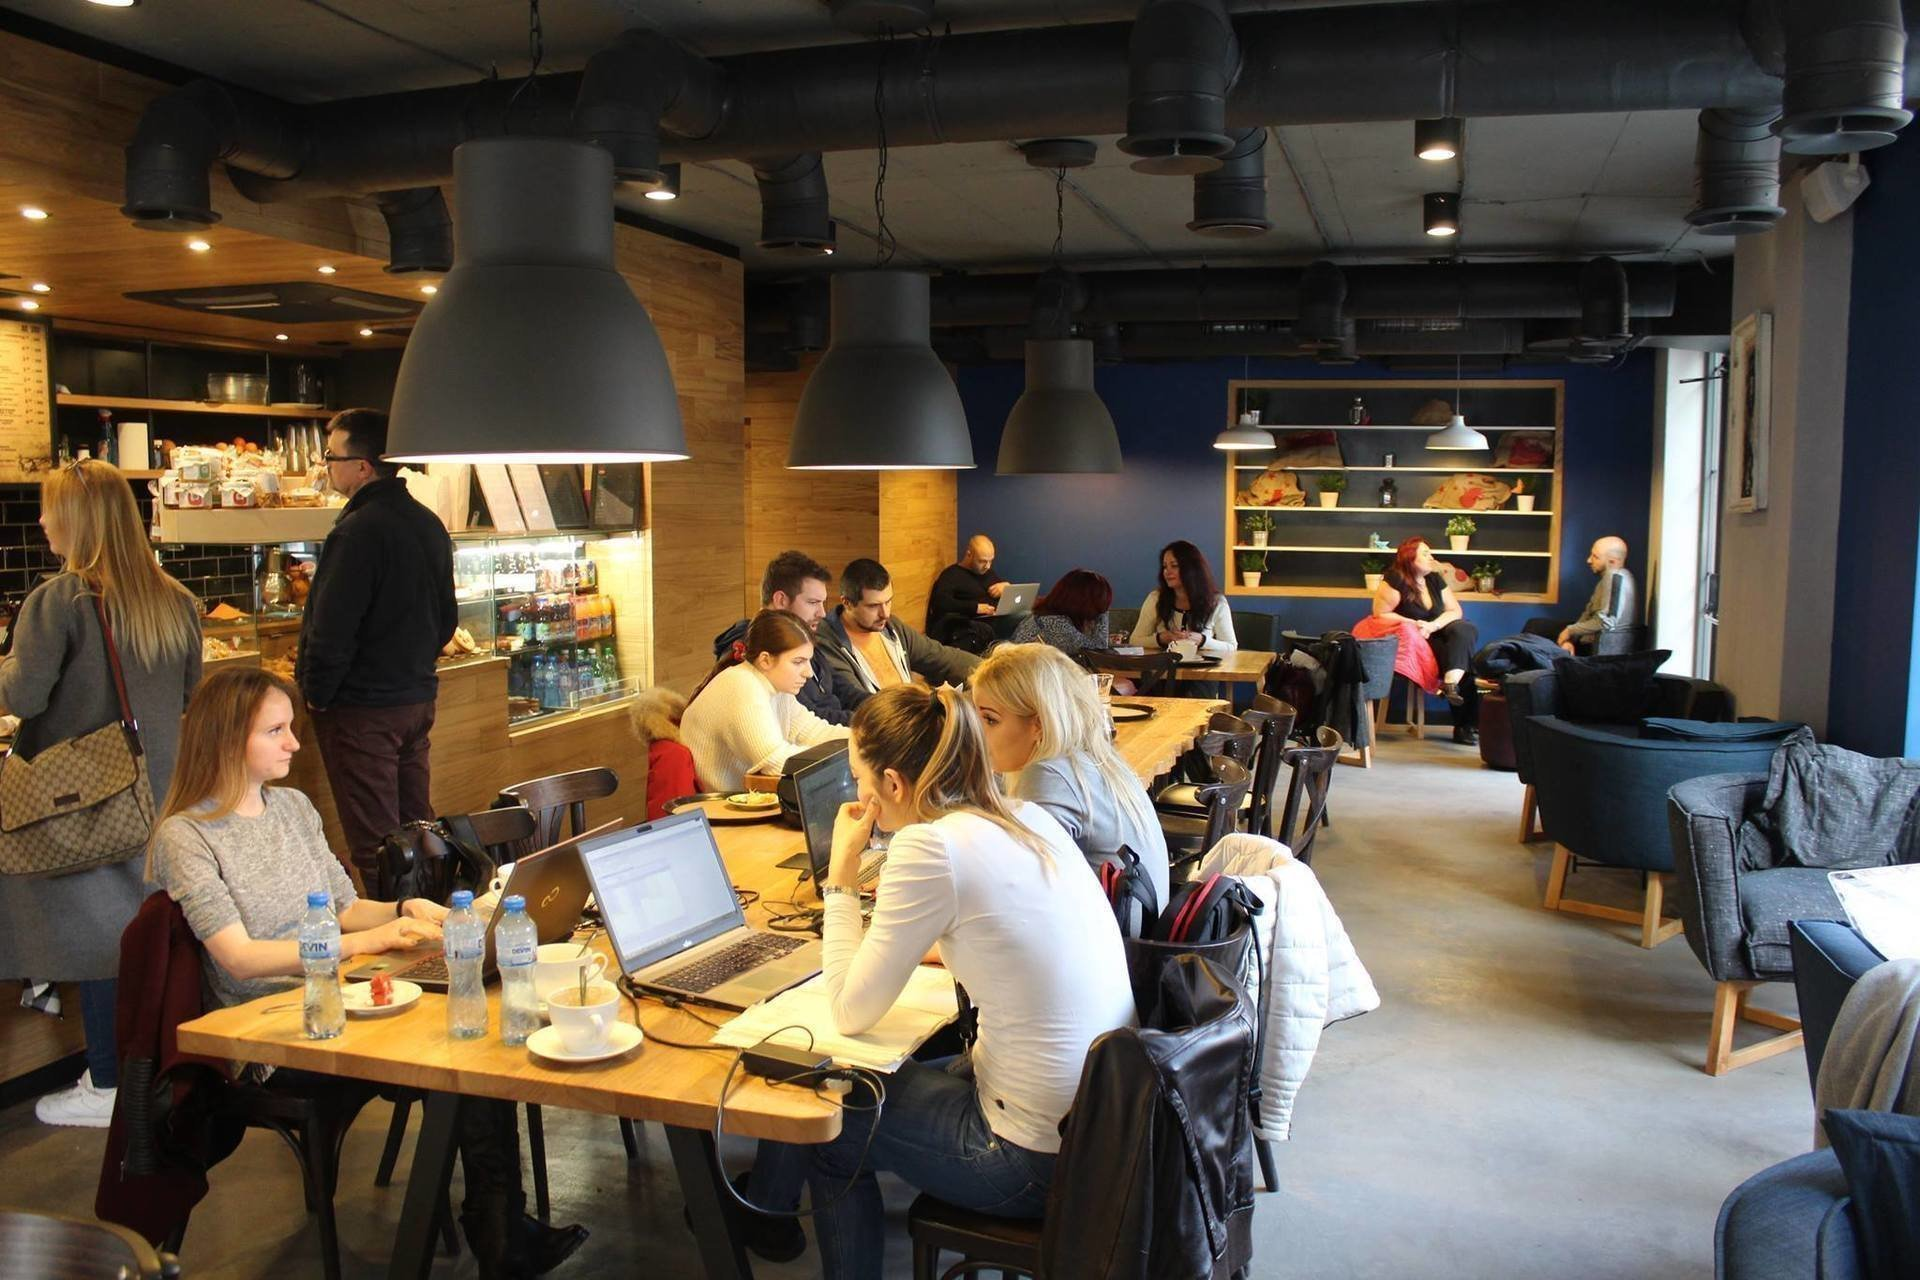 From Barista Coffee And More: A Work-Friendly Place in Sofia